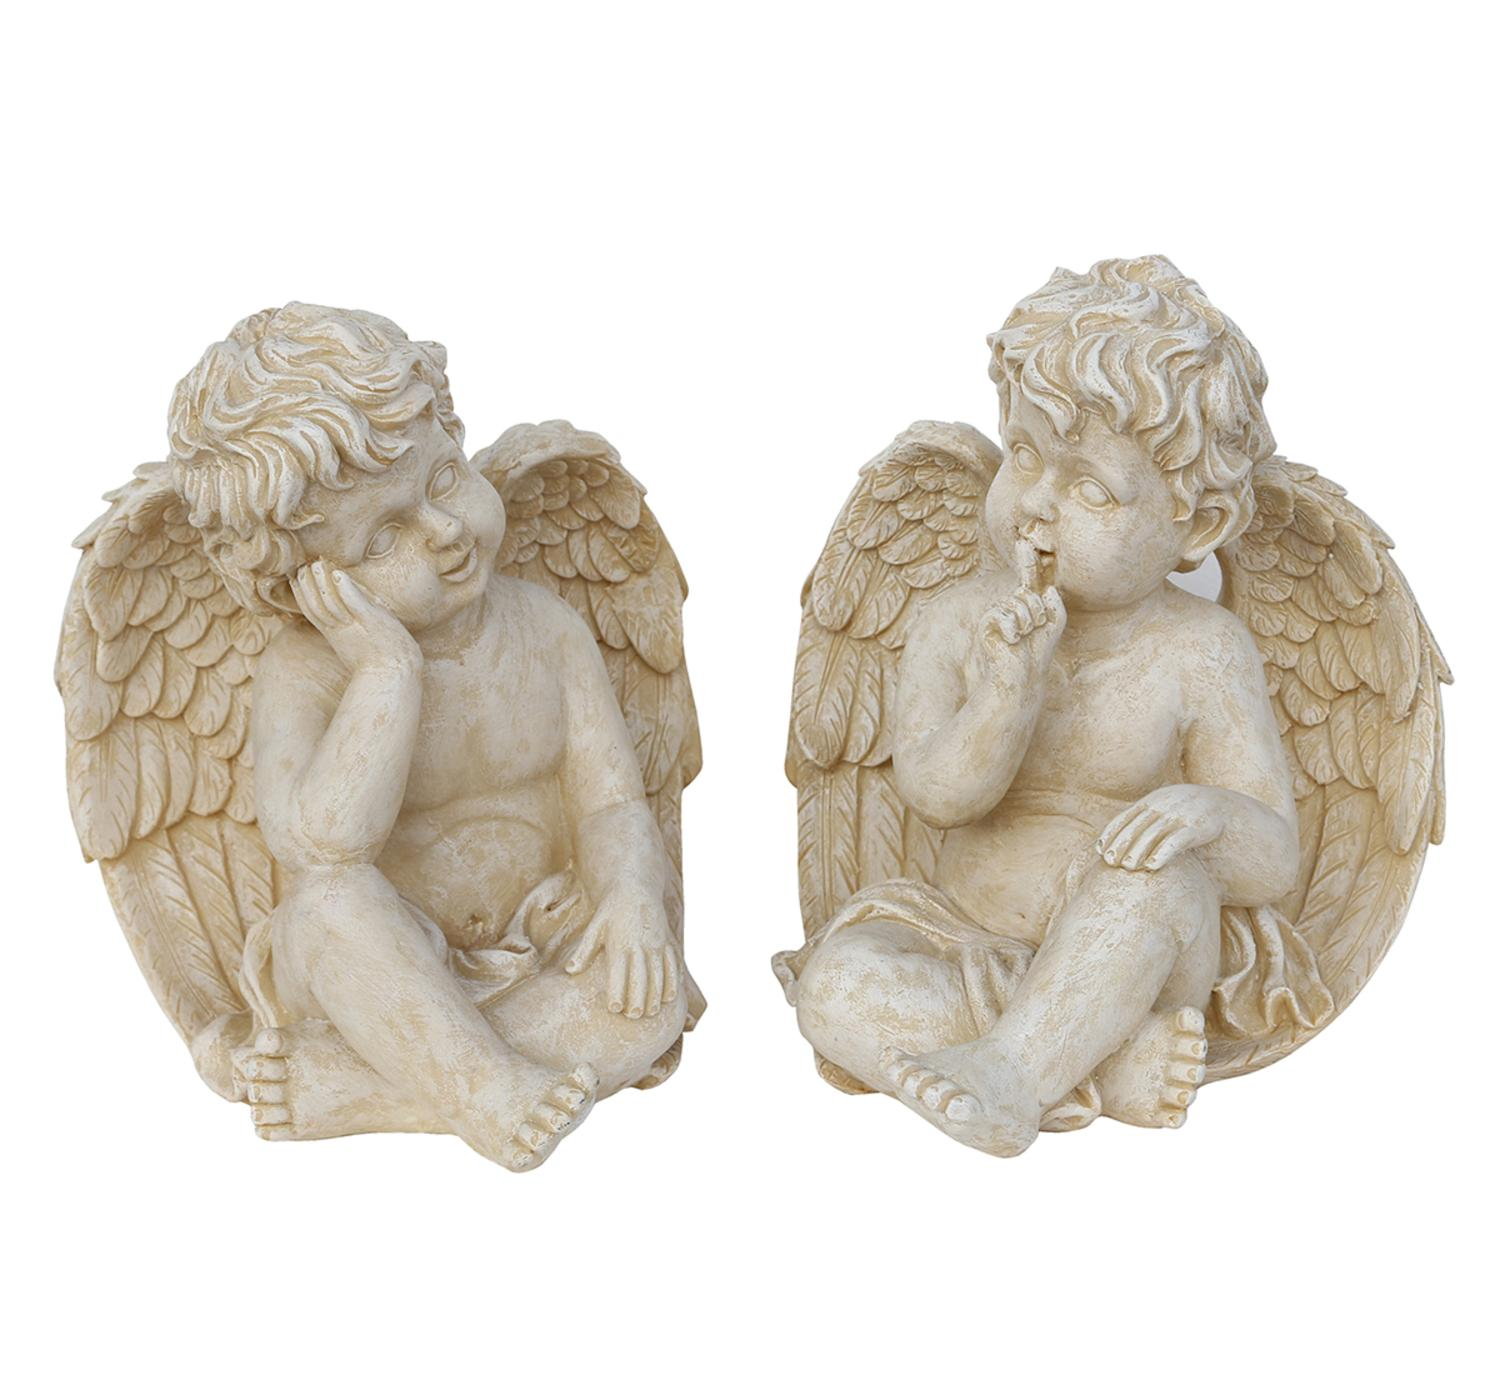 "Set of 2 Weathered Stone Pensive Sitting Cherub Angel Outdoor Garden Statues 13"" by Northlight"